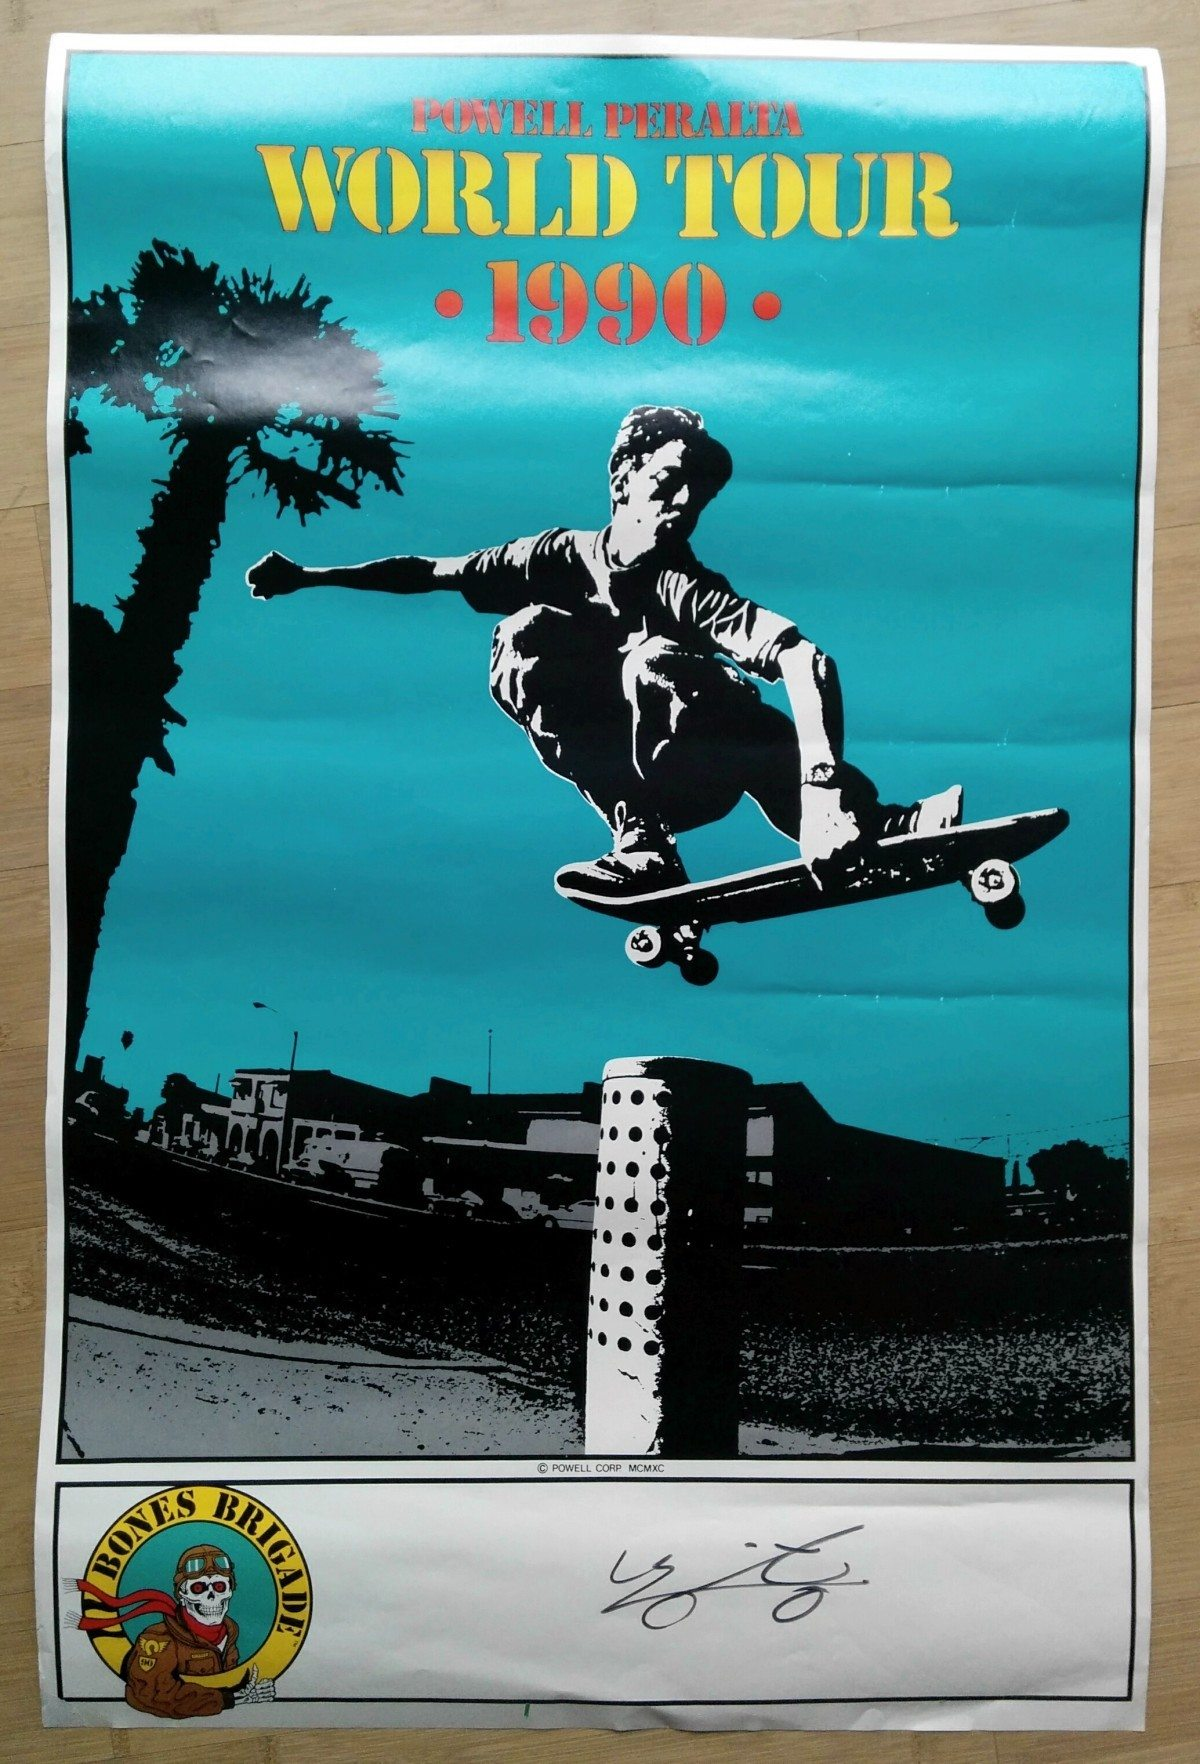 Tag 88/2016: Powell Peralta World Tour 1990